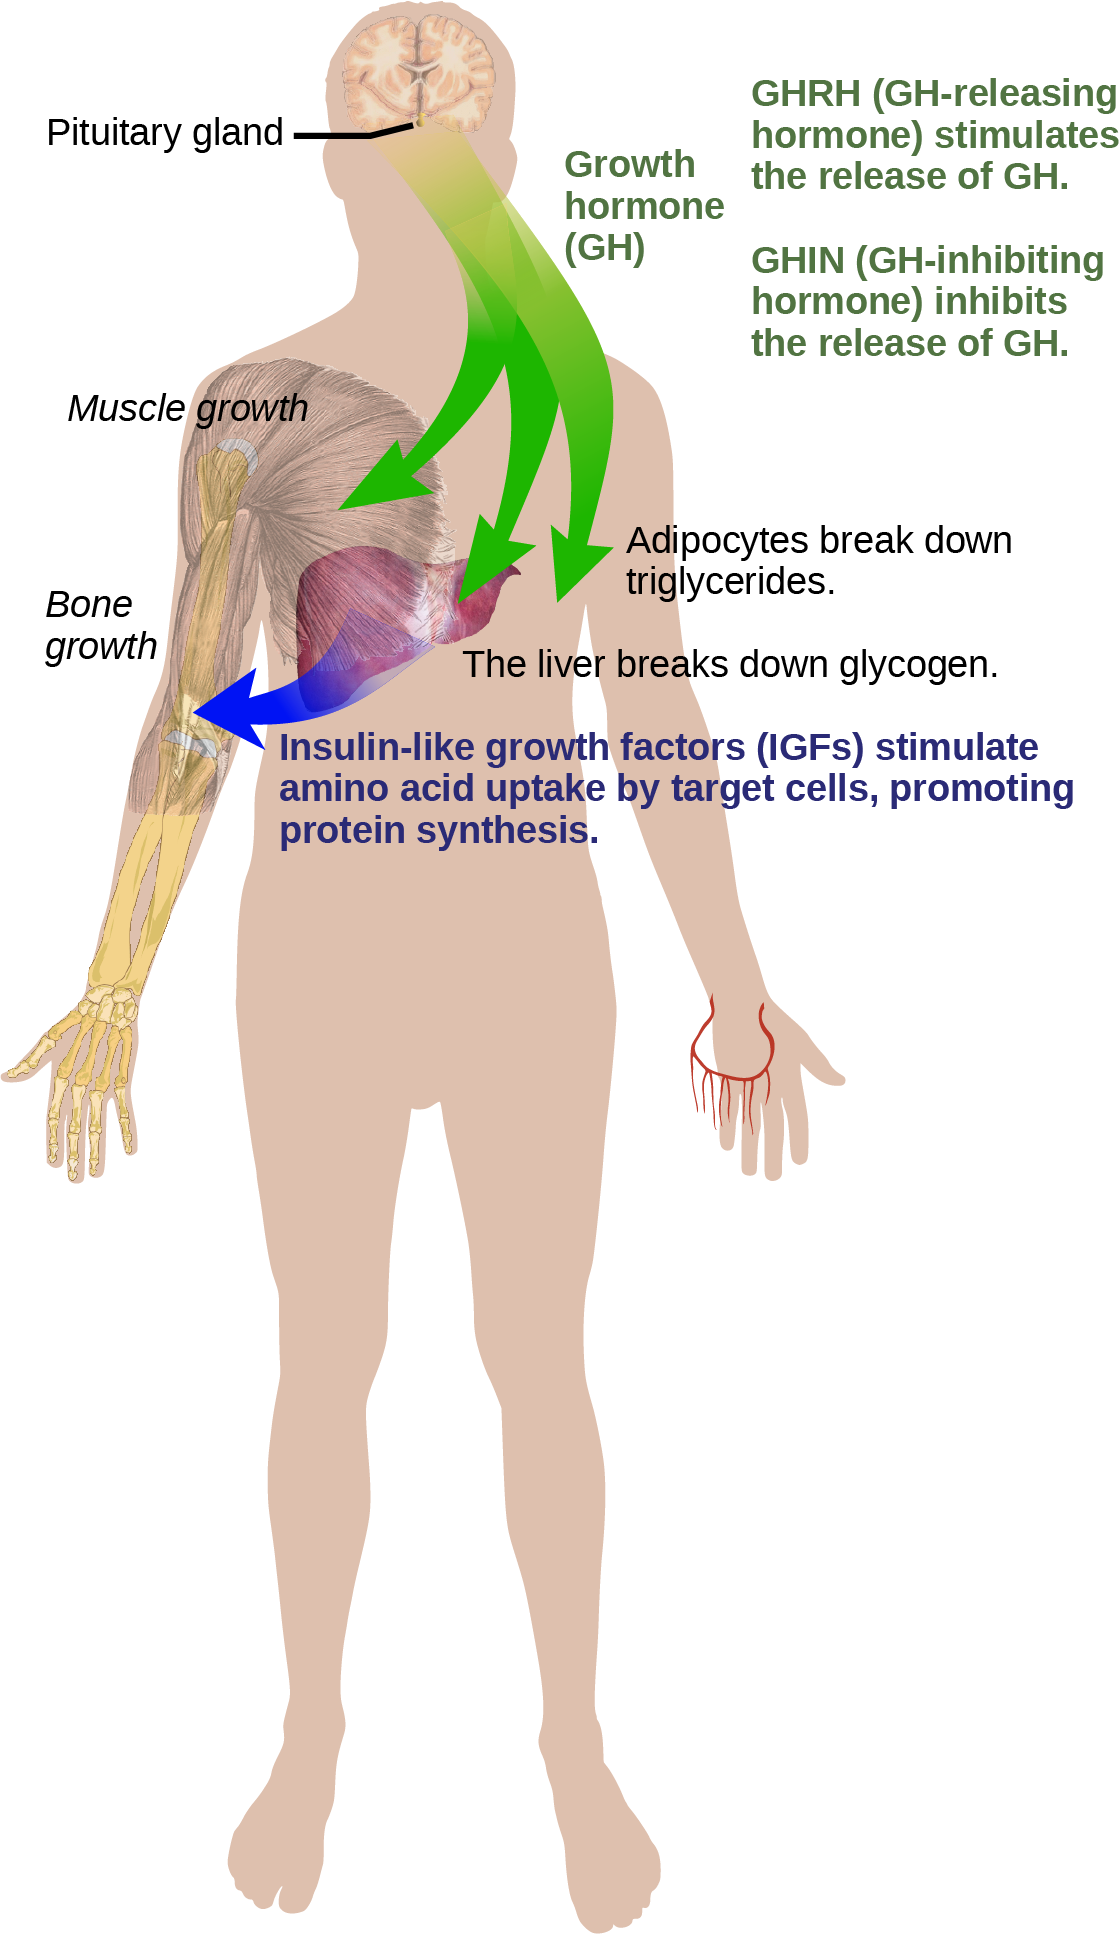 Growth hormone, or GH released from the pituitary gland stimulates bone and muscle growth. It also stimulates fat breakdown by adipocytes and glucagon breakdown by the liver. The liver releases IGFs, which cause target cells to take up amino acids, promoting protein synthesis. GH-releasing hormone stimulates the release of GH, and GH-inhibiting hormone, inhibits the release of GH.